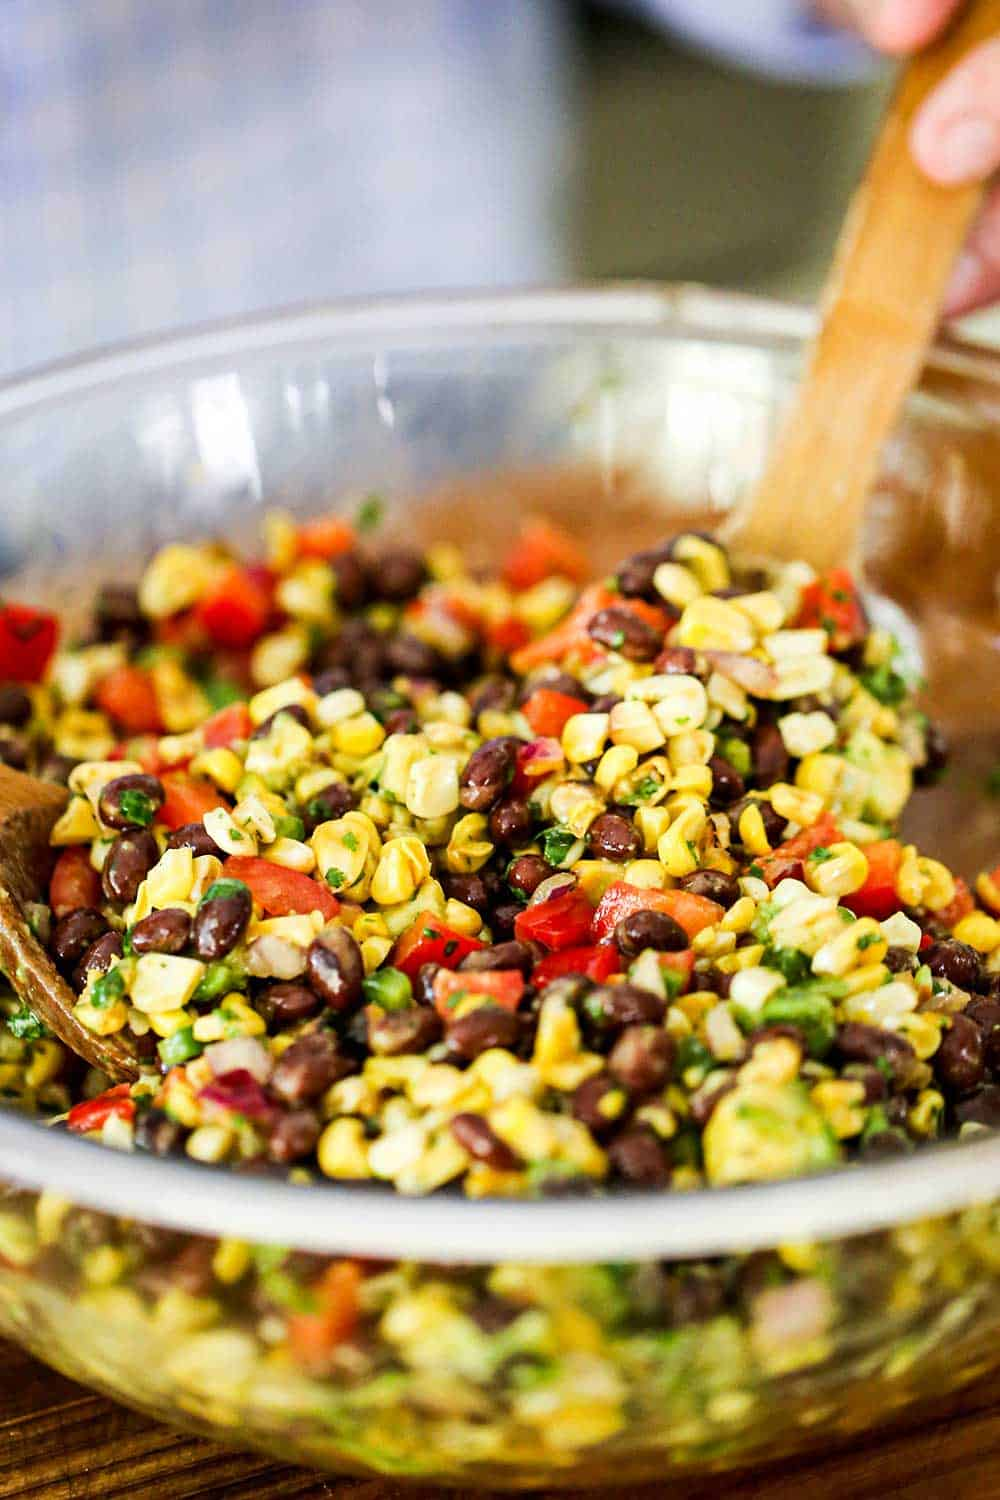 A glass bowl filled with fresh corn, black beans, red bell peppers, and avocado pieces all being stirred by a wooden spoon.